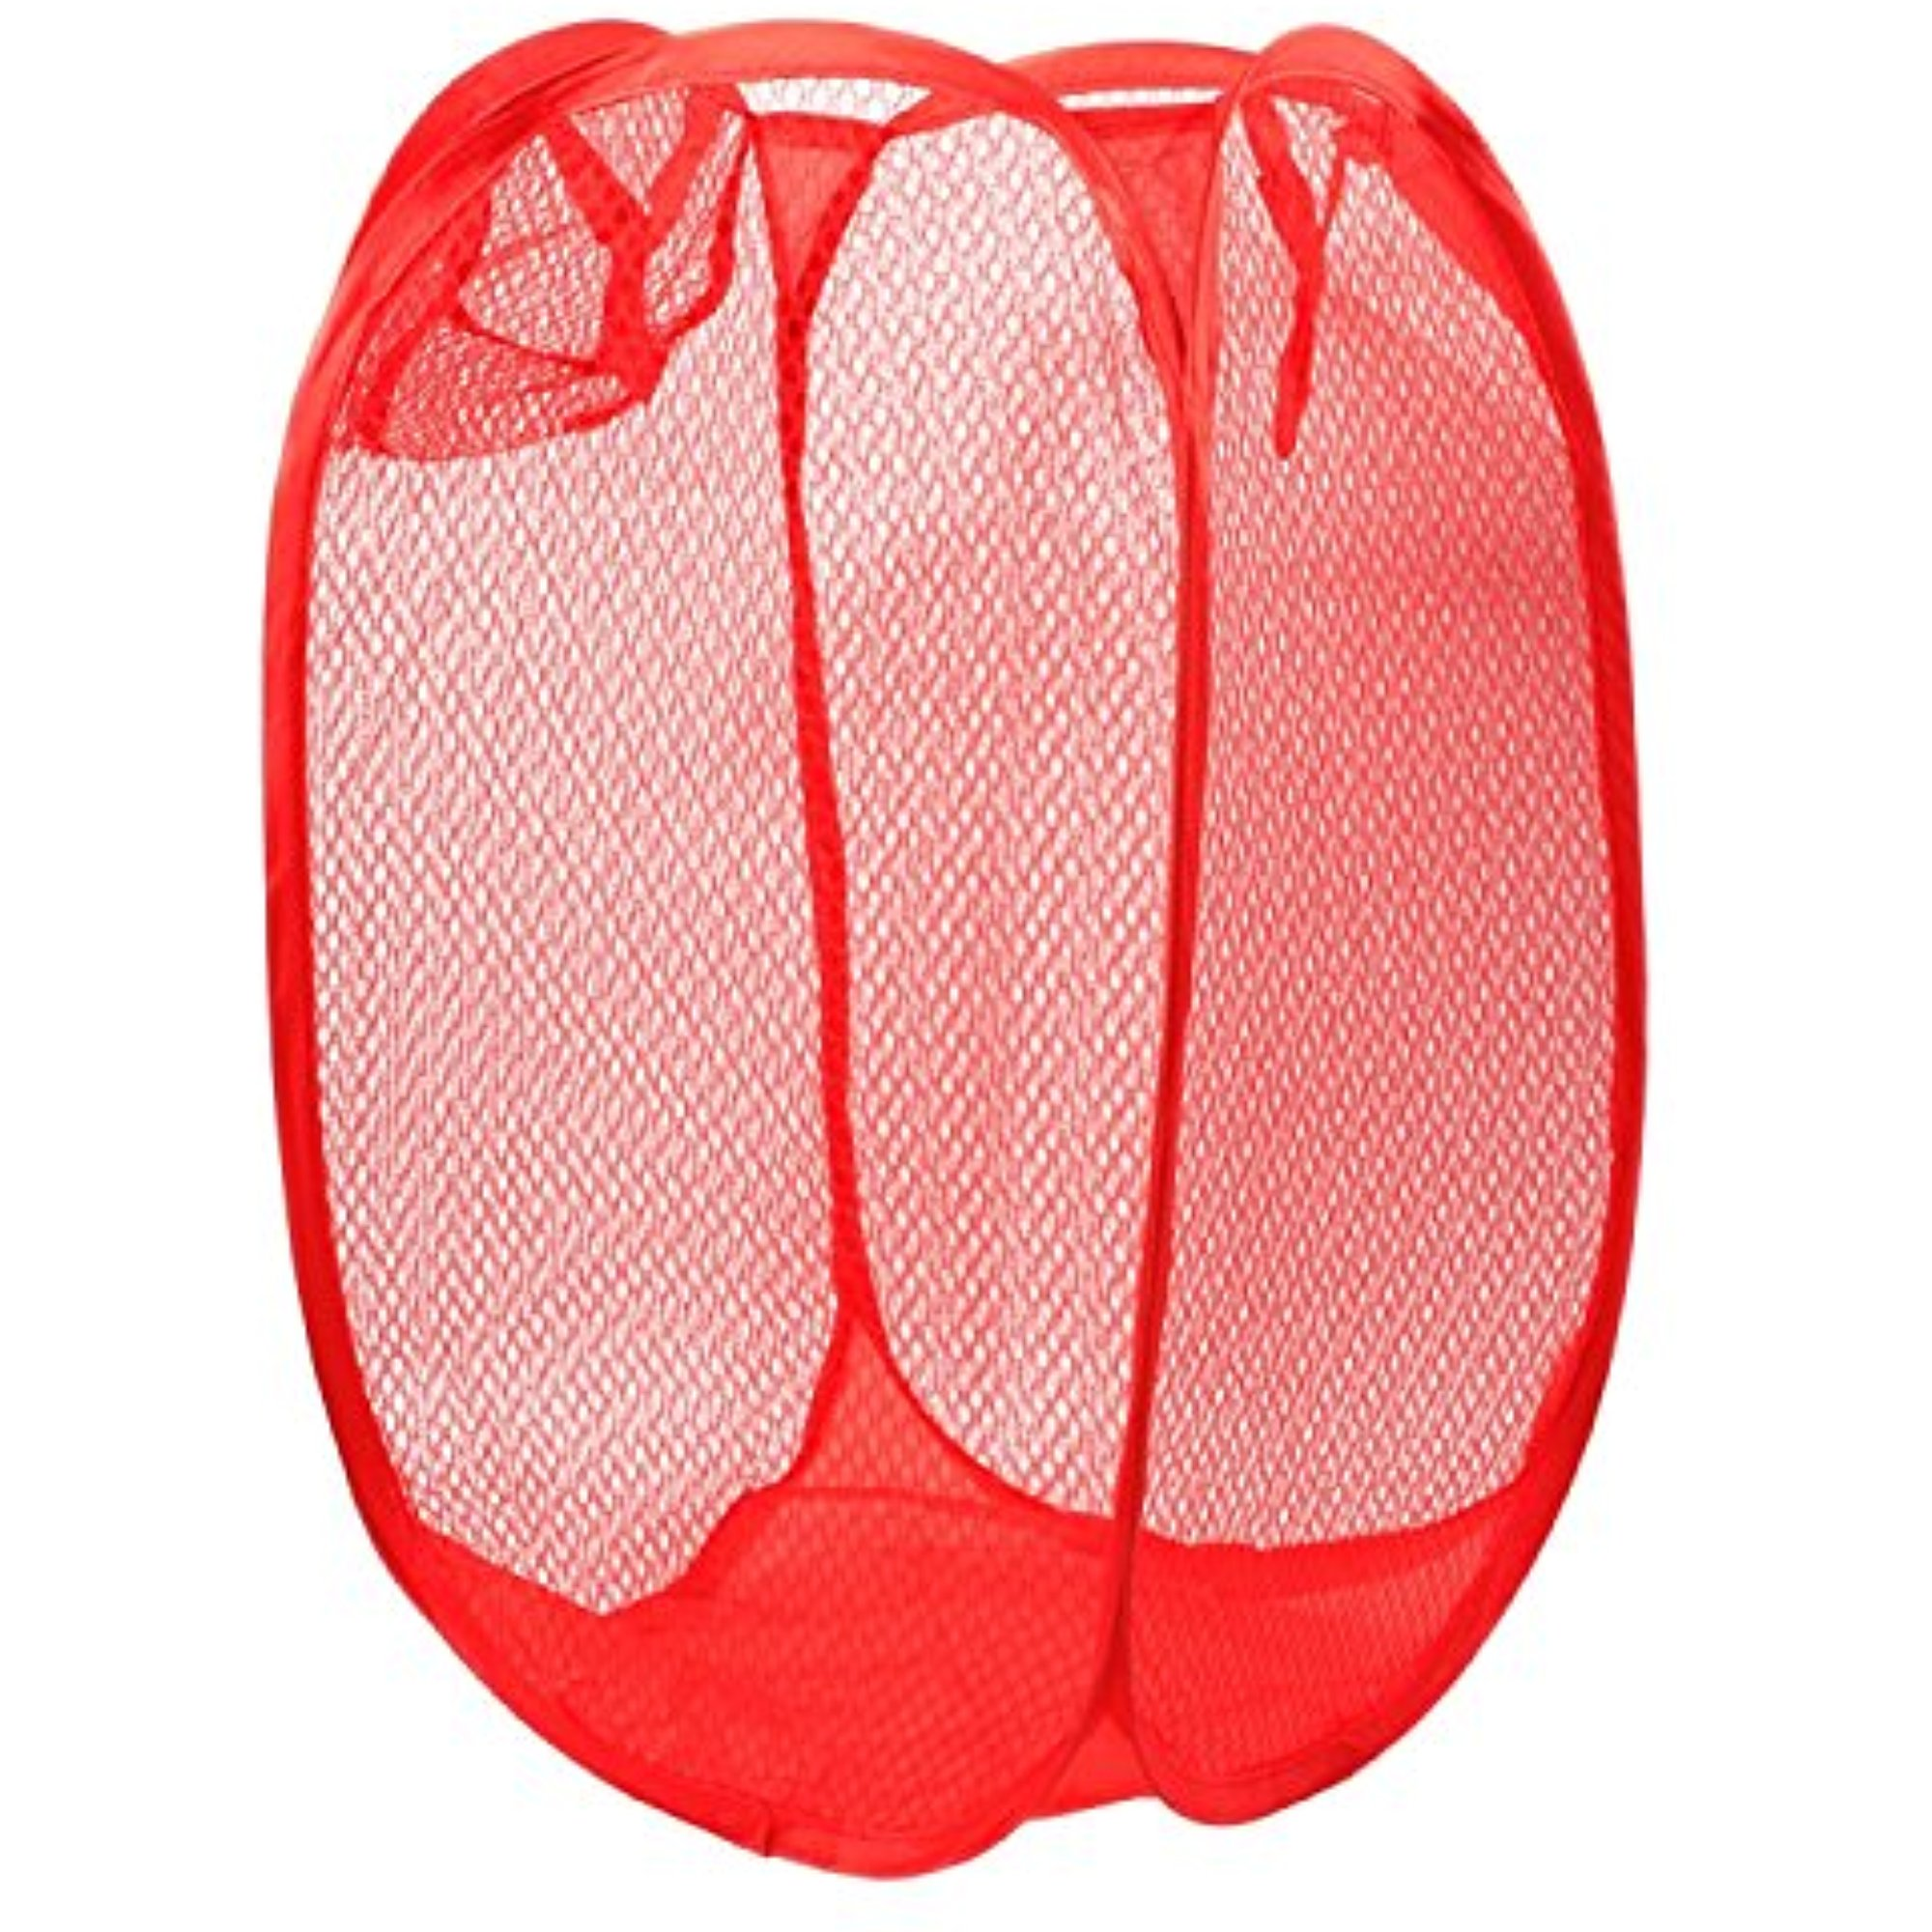 Pop Up Laundry Hamper - Includes Homemade Stain Removal Recipe - Household Storage Essentials (Red)